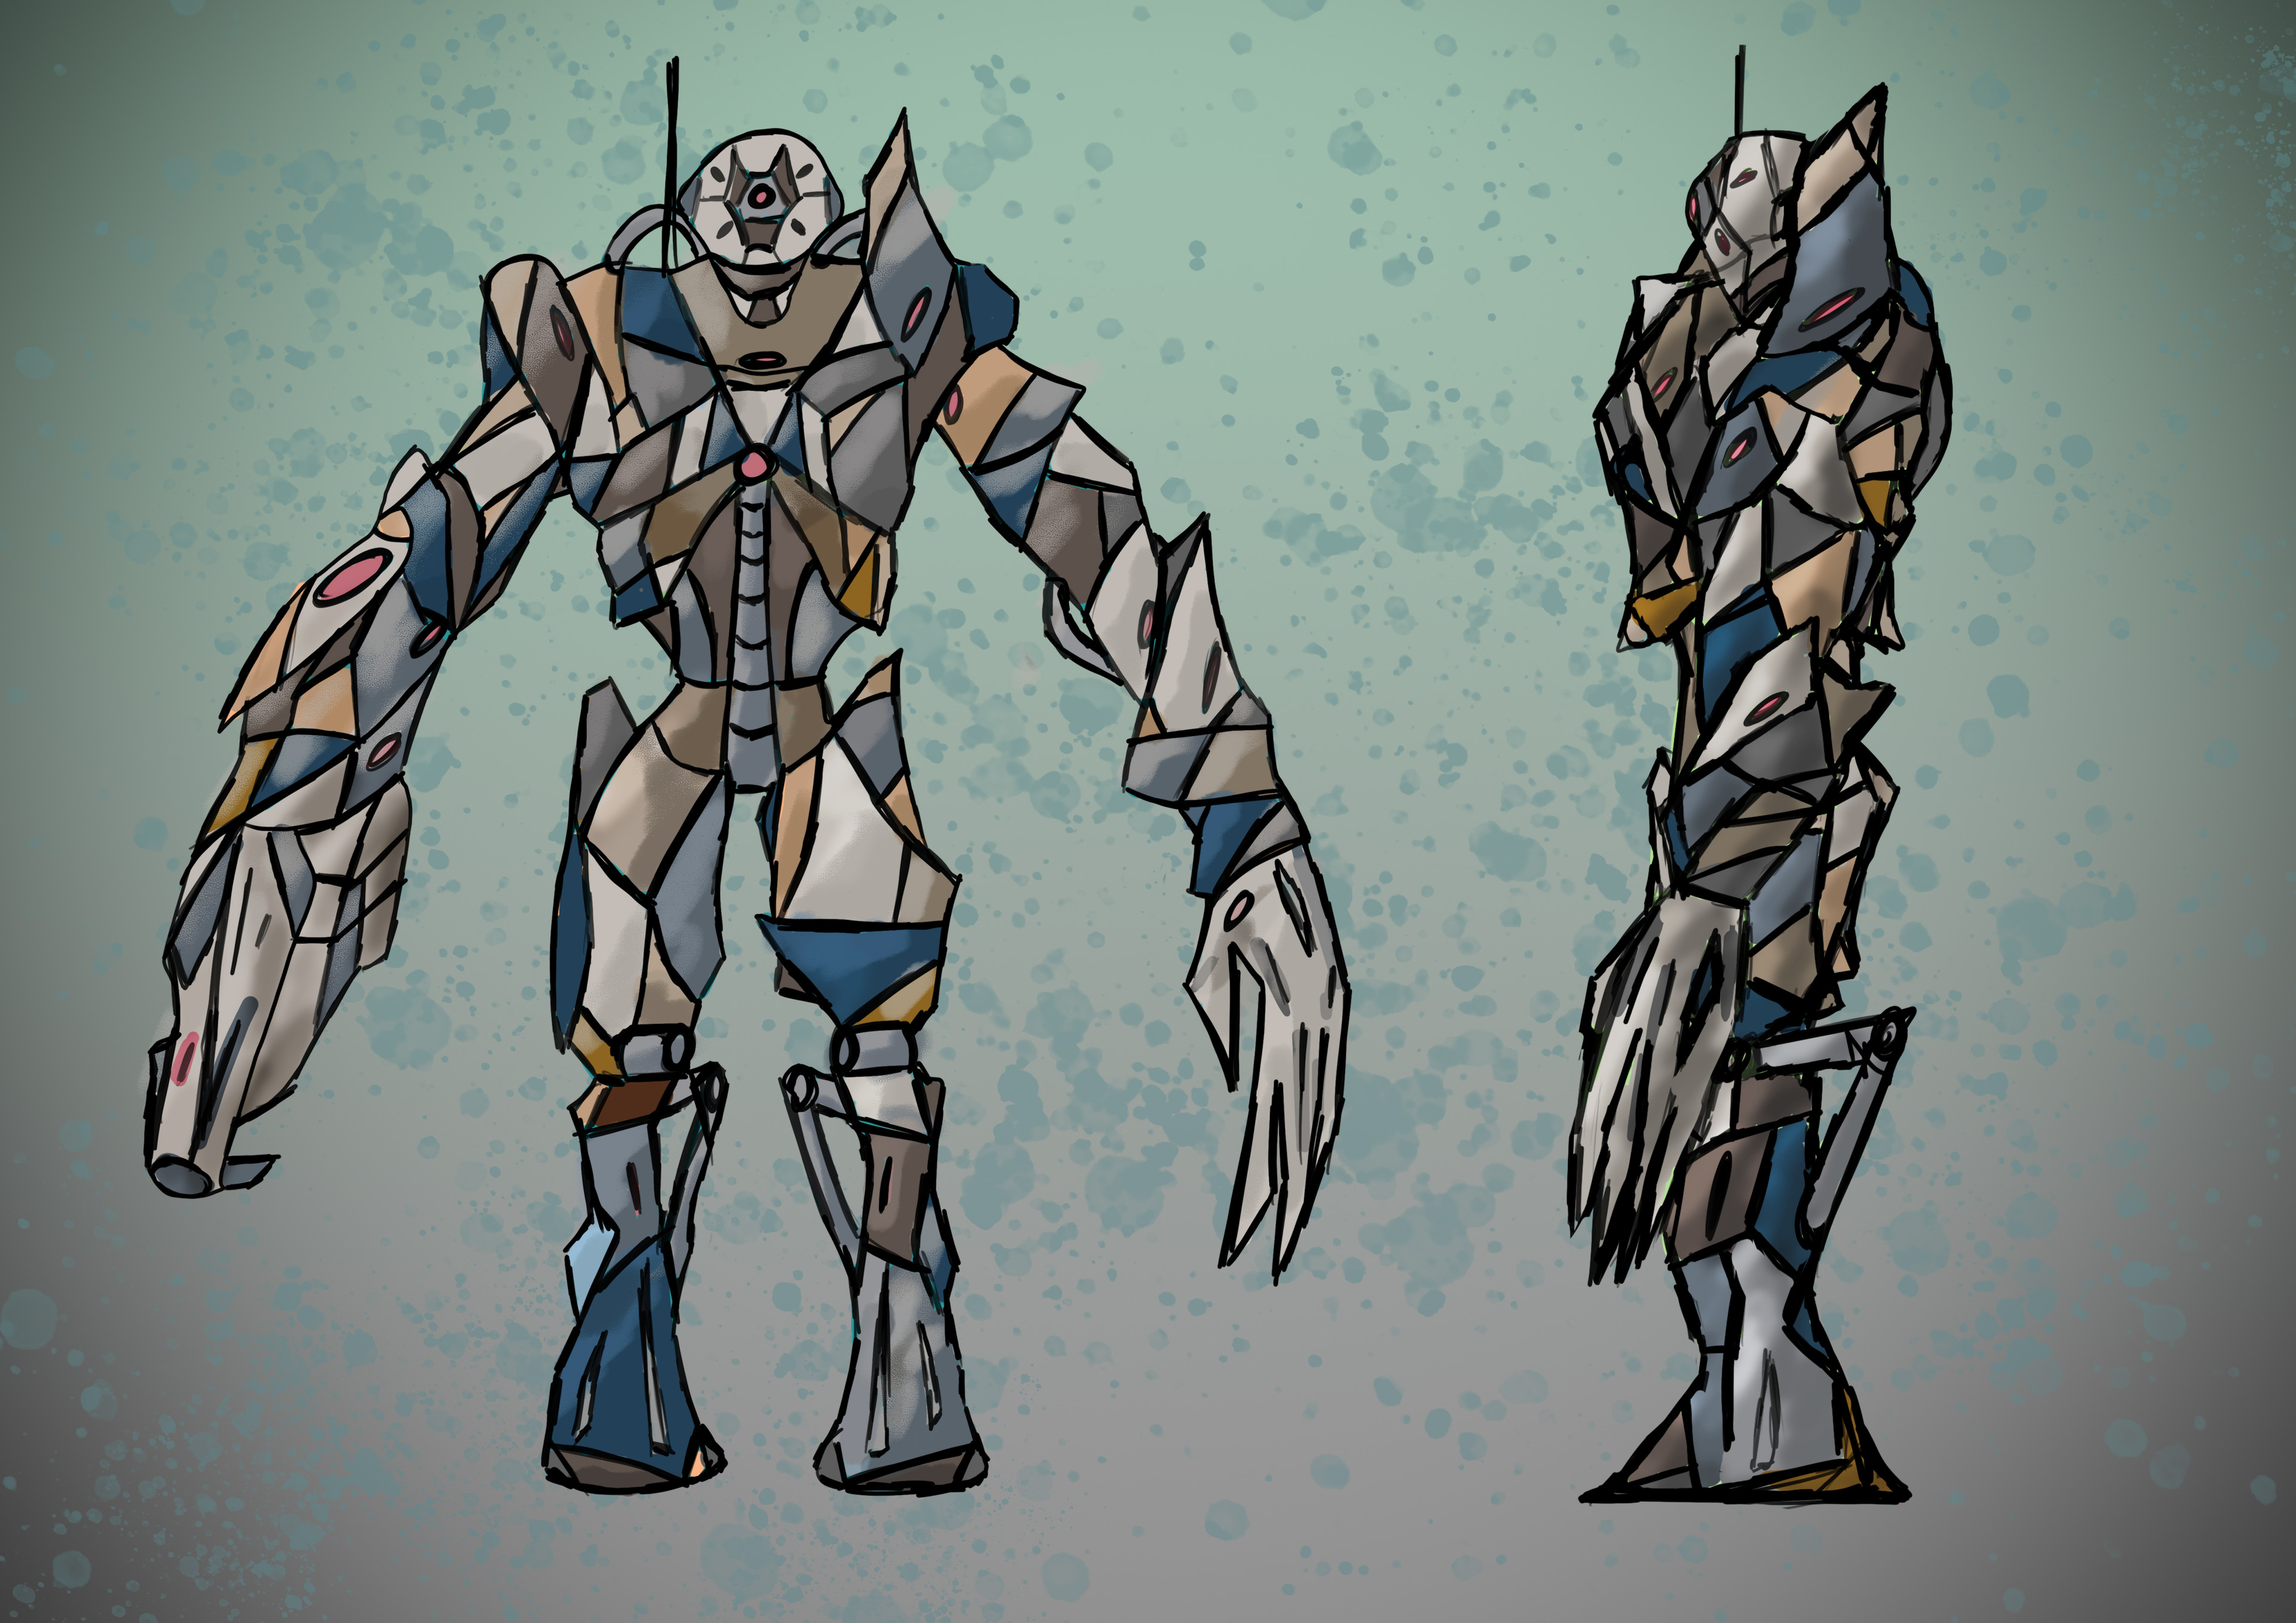 A design drawing for my large robotic character.